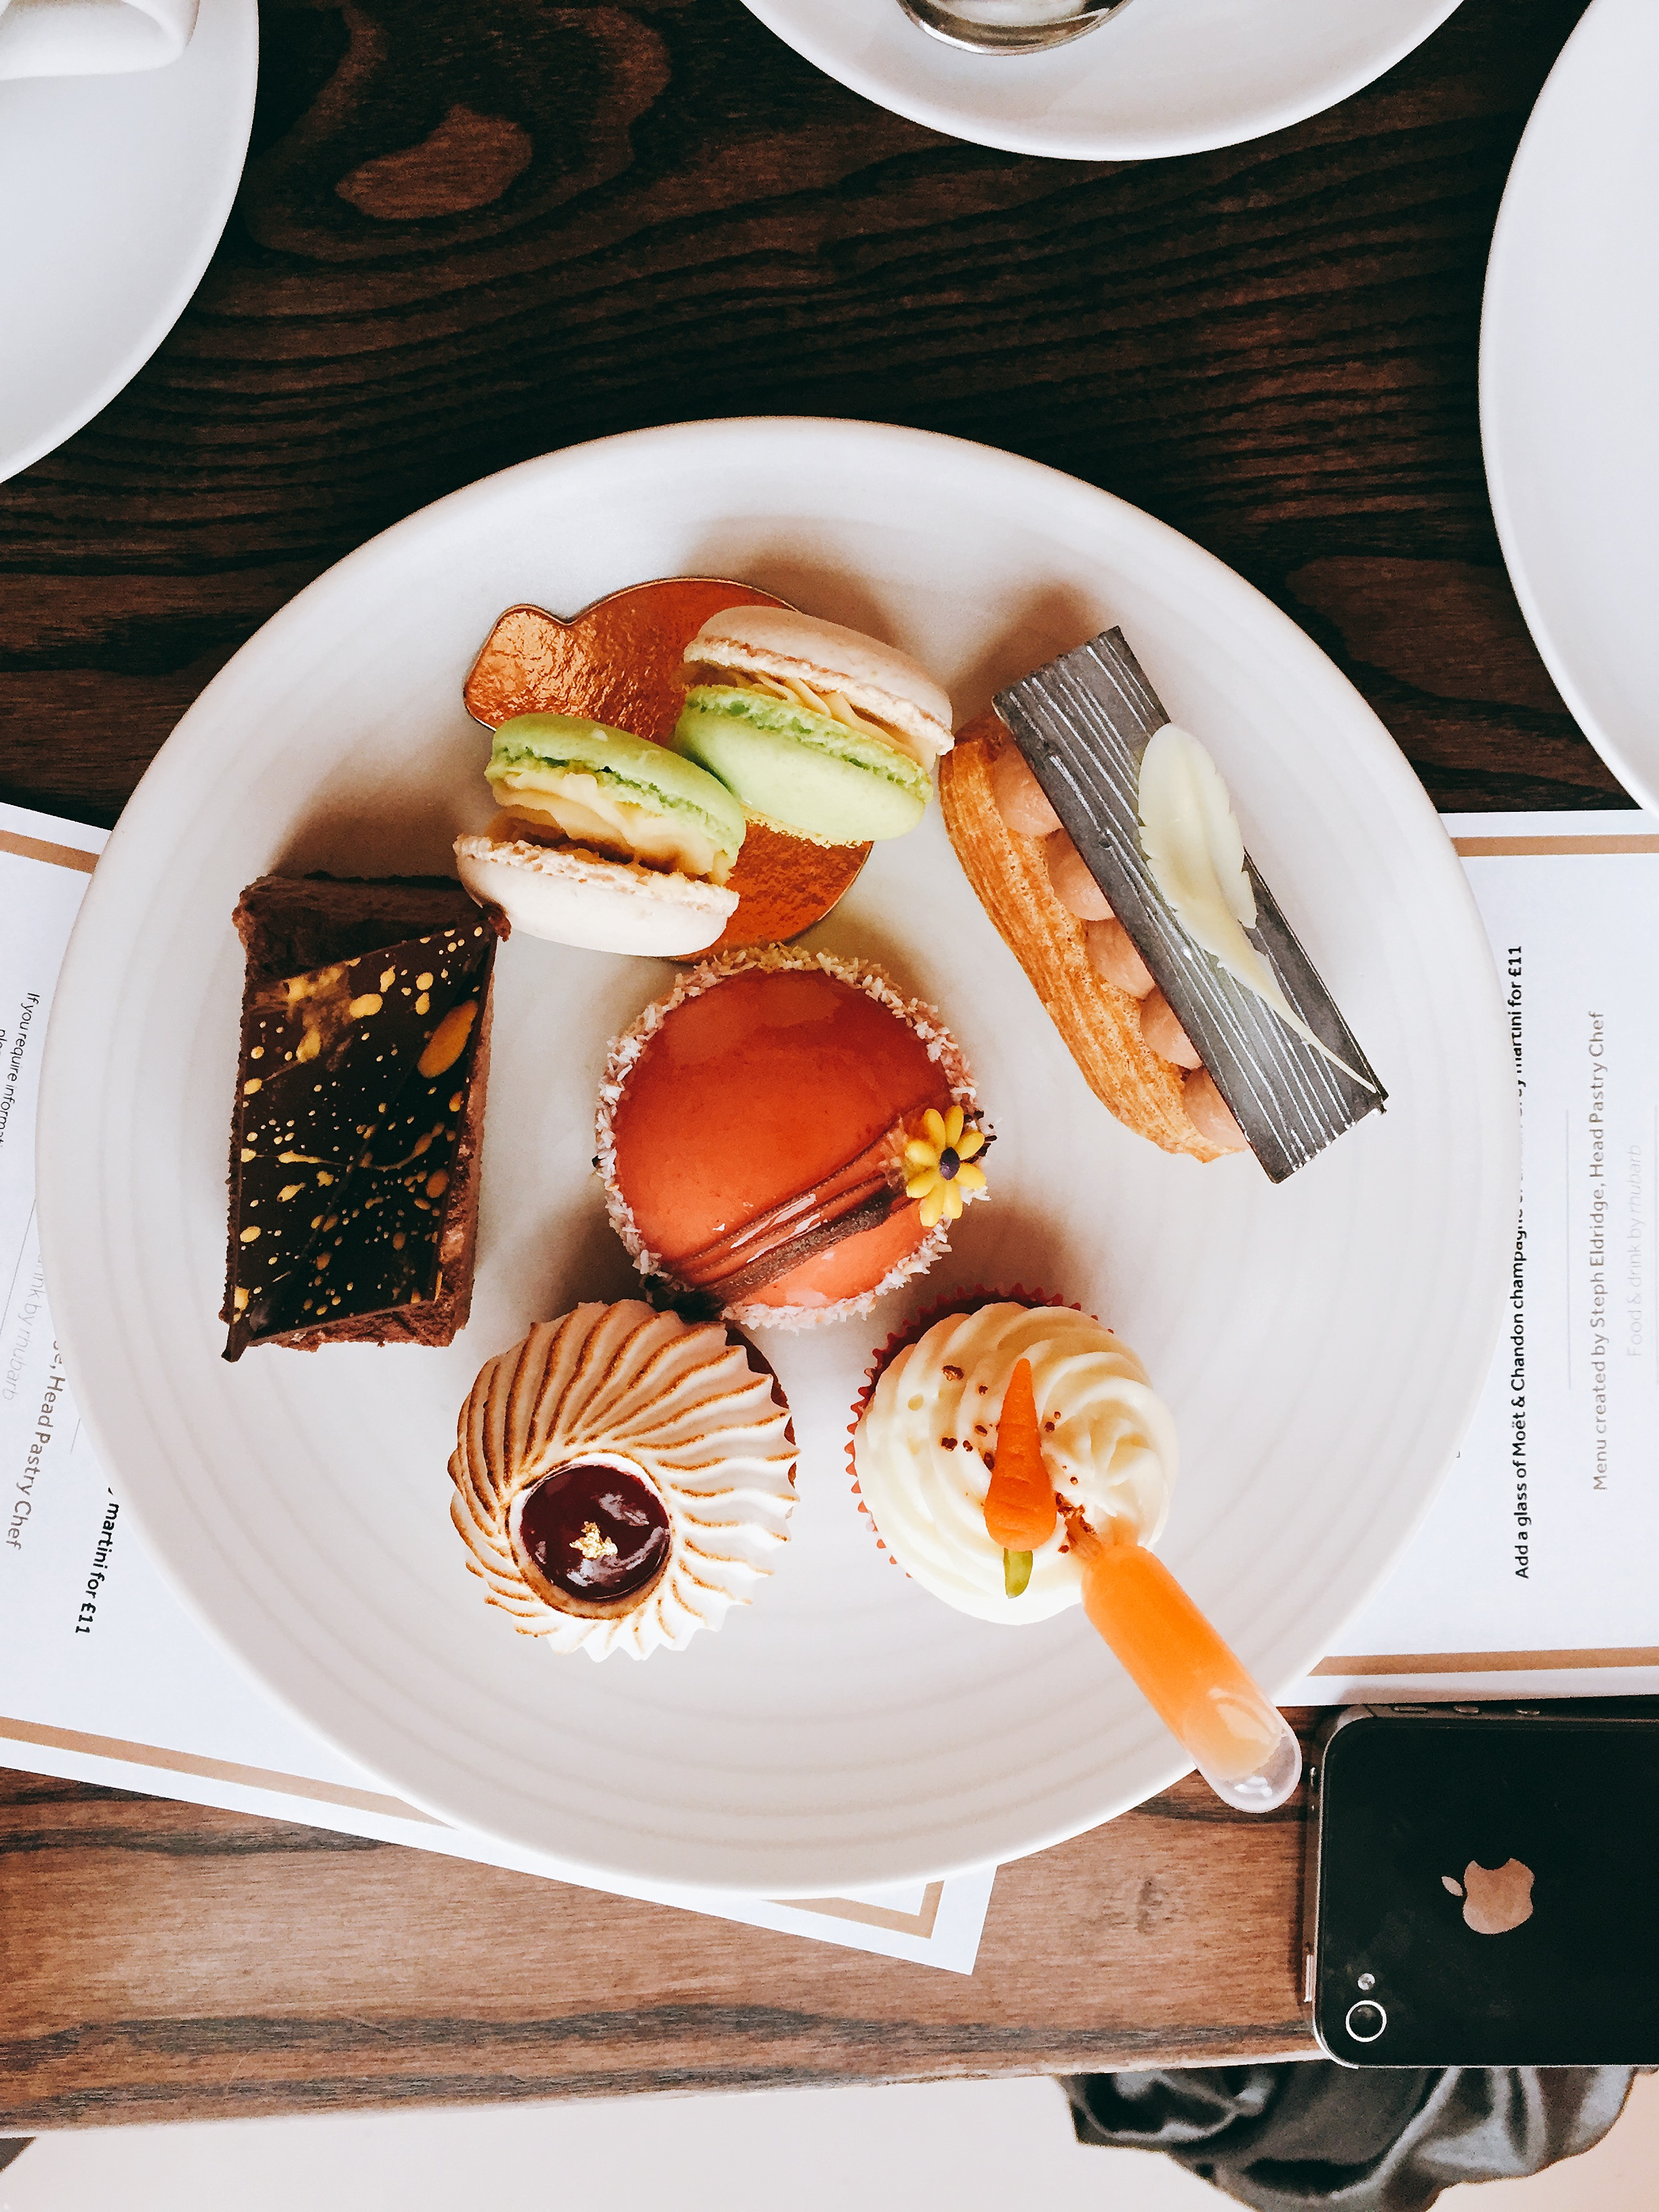 Cakes - Afternoon Tea at the Royal Albert Hall